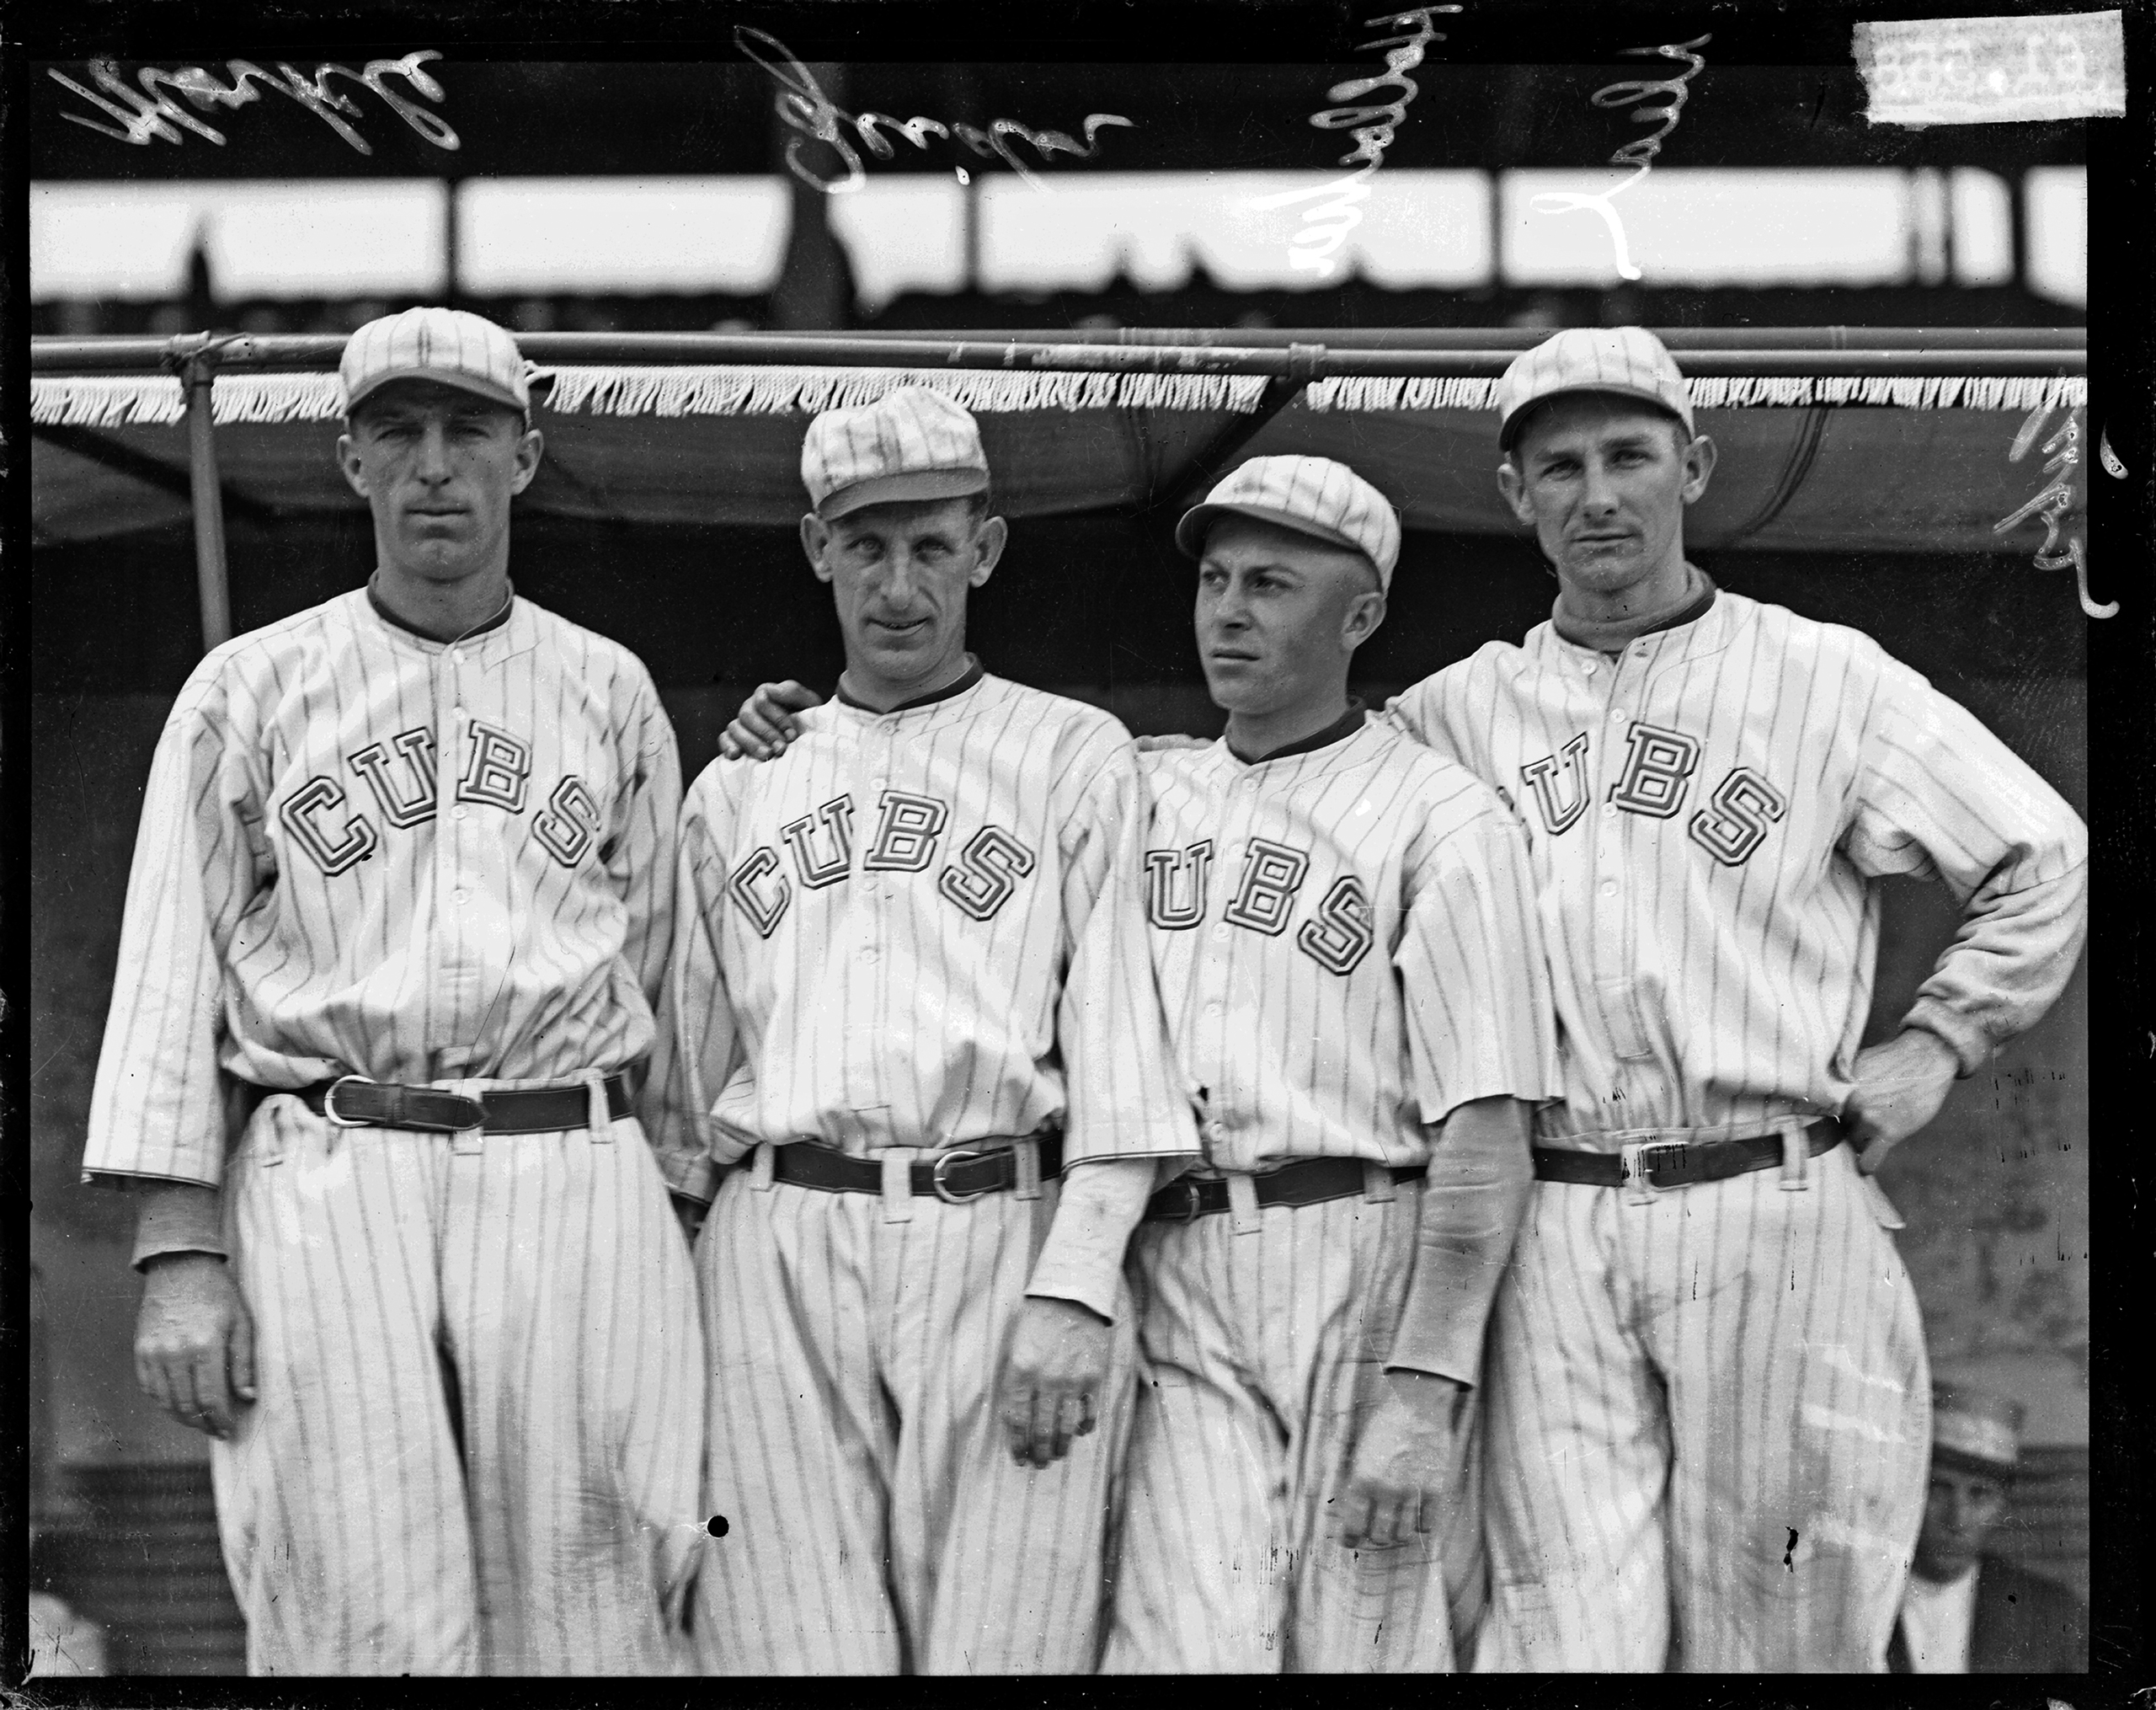 Chicago Cubs baseball players Merkle, Zeider, Charles Hollocher, and Deal standing in front of a dugout at Weeghman Park, Chicago, 1918.